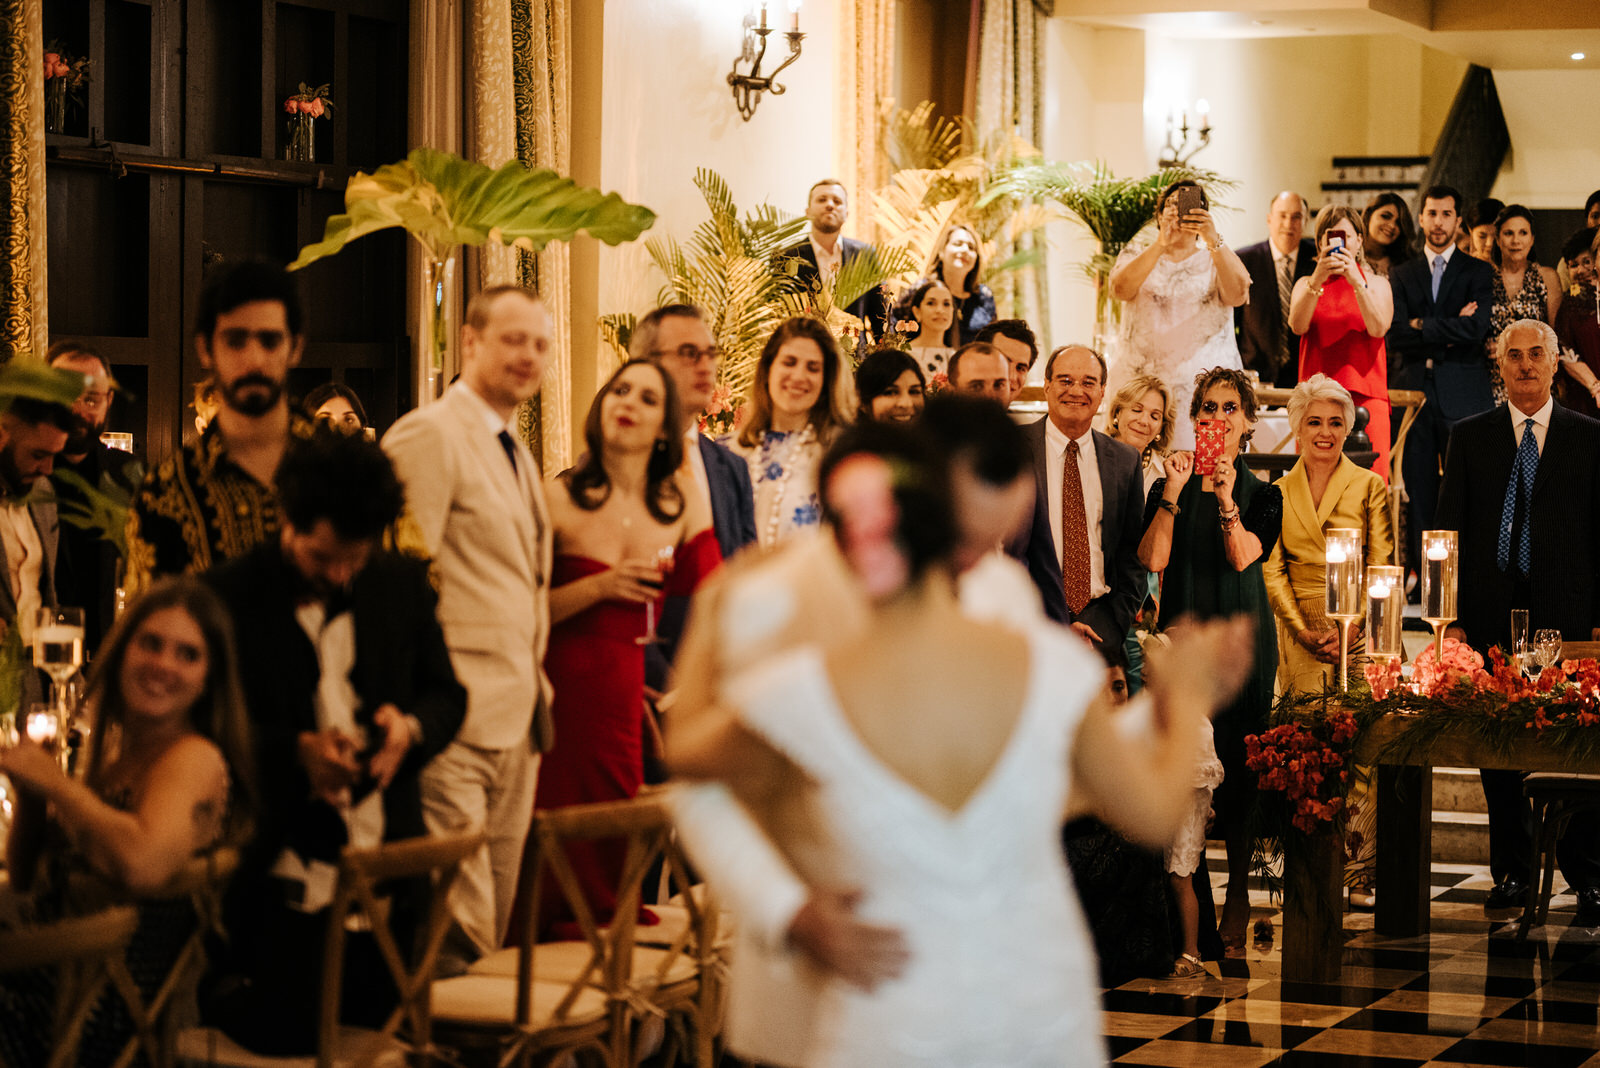 Bride and groom during their first dance, out of focus, while everyone in the background smiles at them and some guests take photos